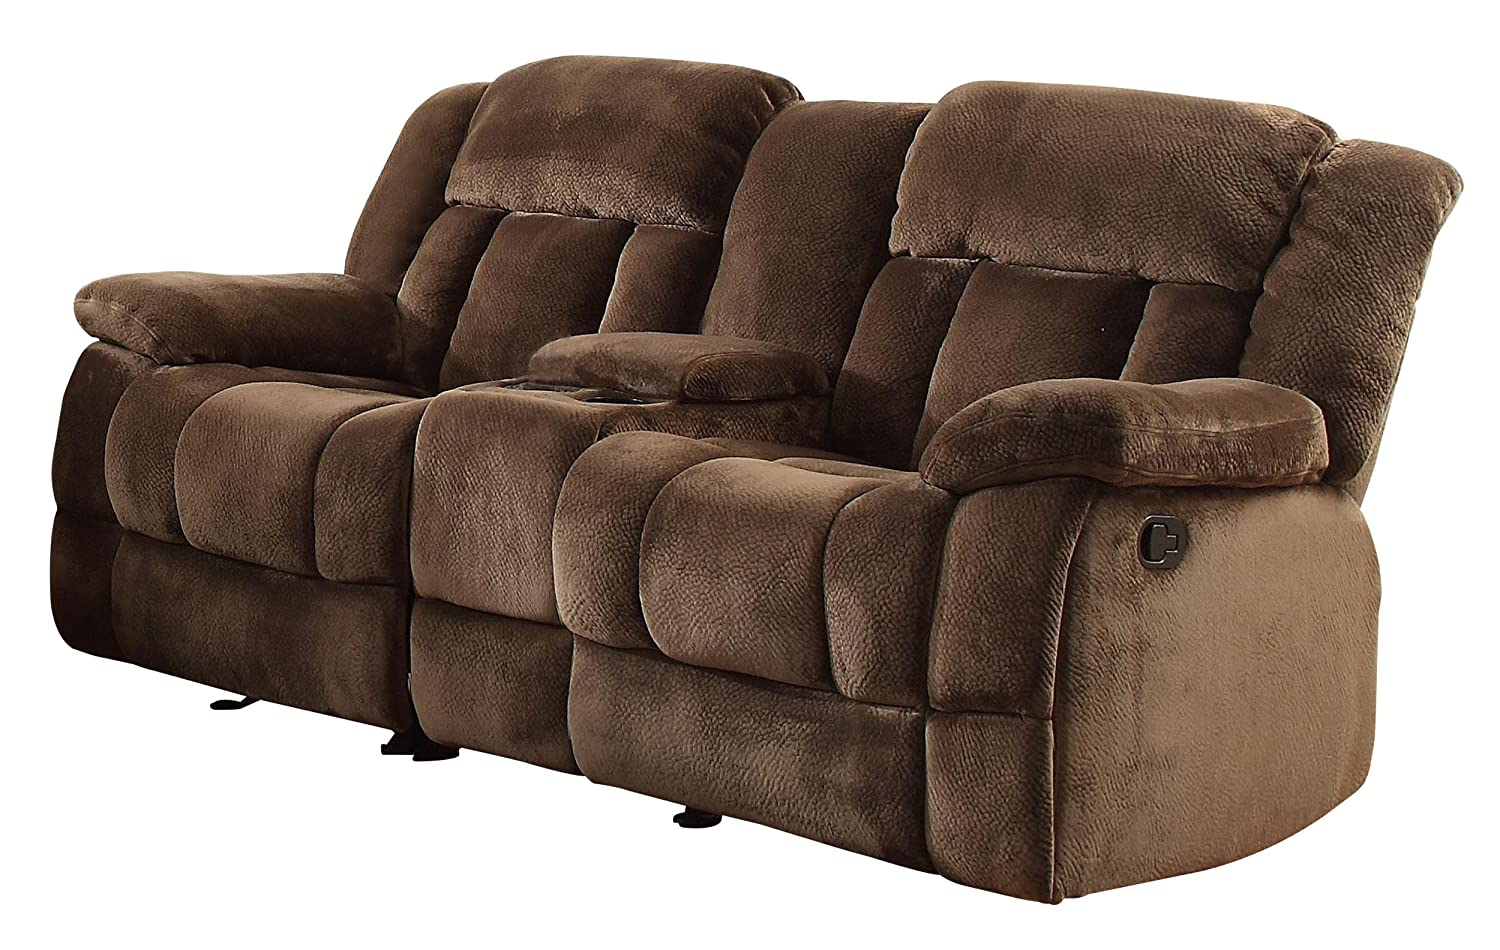 Amazon.com: Homelegance 9636 2 Laurelton Textured Plush Microfiber Dual  Glider Recliner Love Seat With Console, Chocolate Brown: Kitchen U0026 Dining